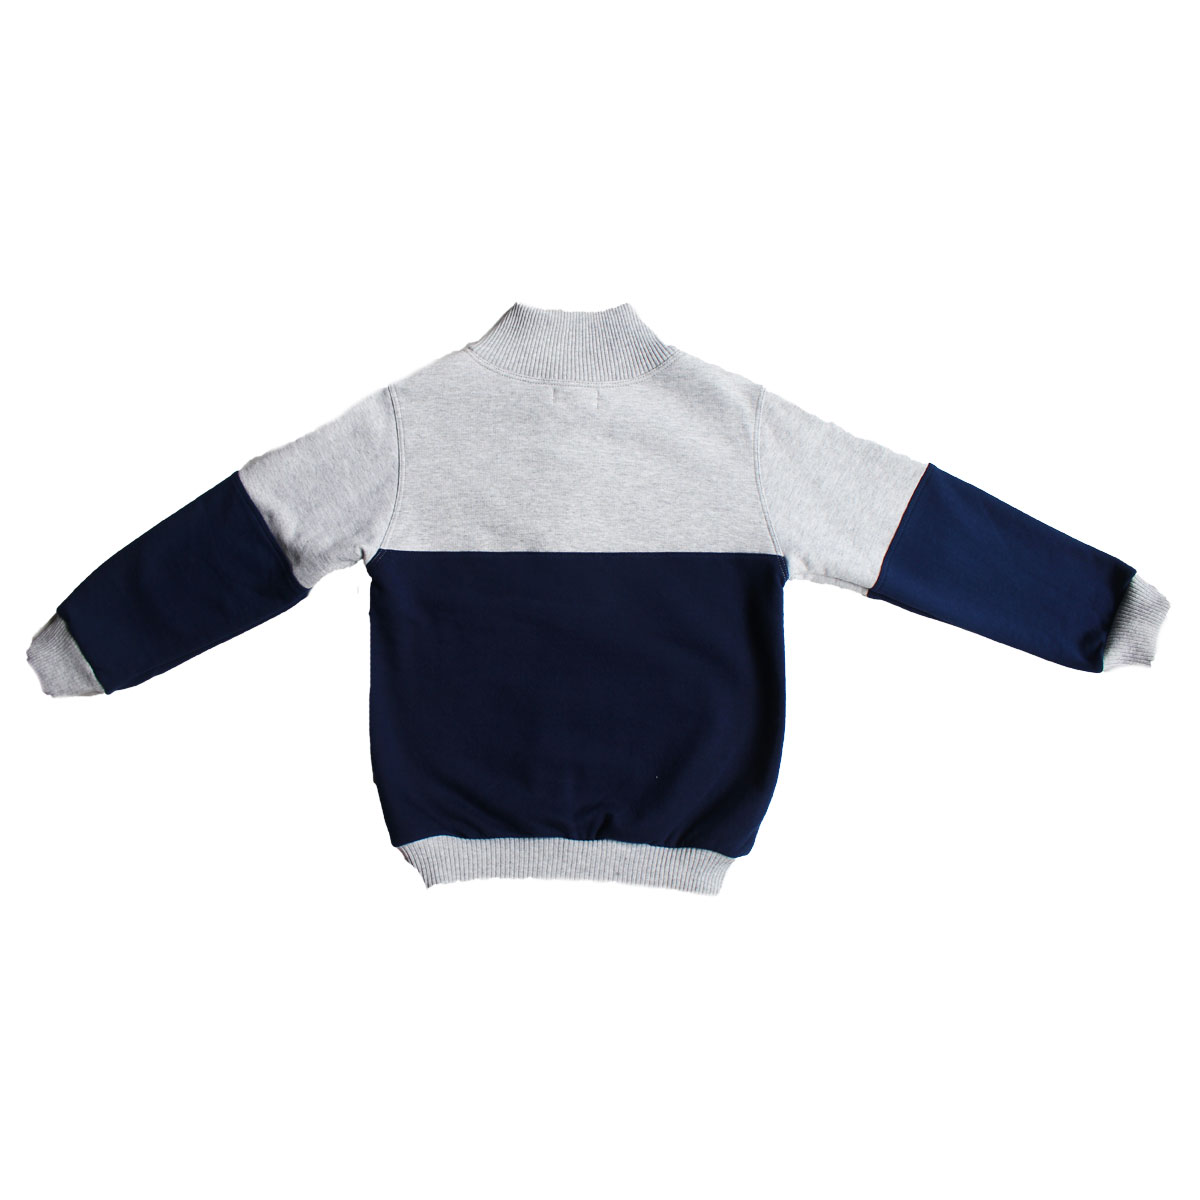 Cross Neck PullOver_Gray&Blue Back